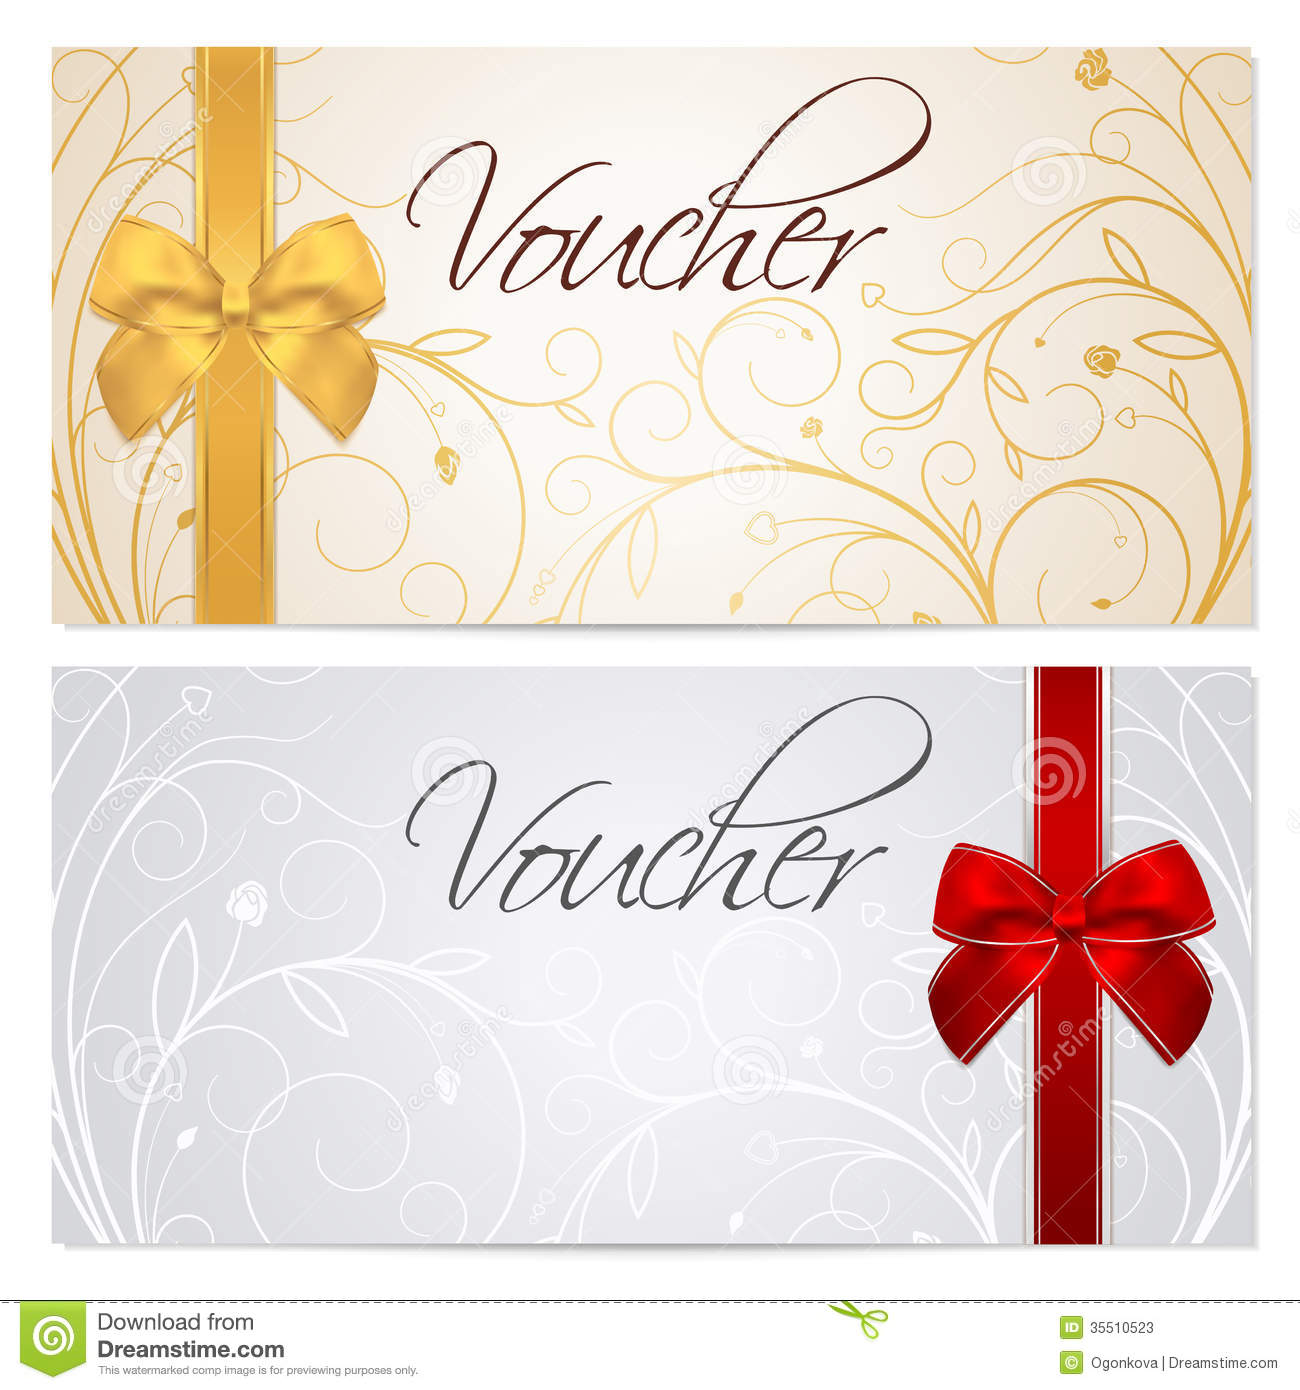 doc prize voucher template doc prize voucher simple gift certificate template coupon template word prize voucher template